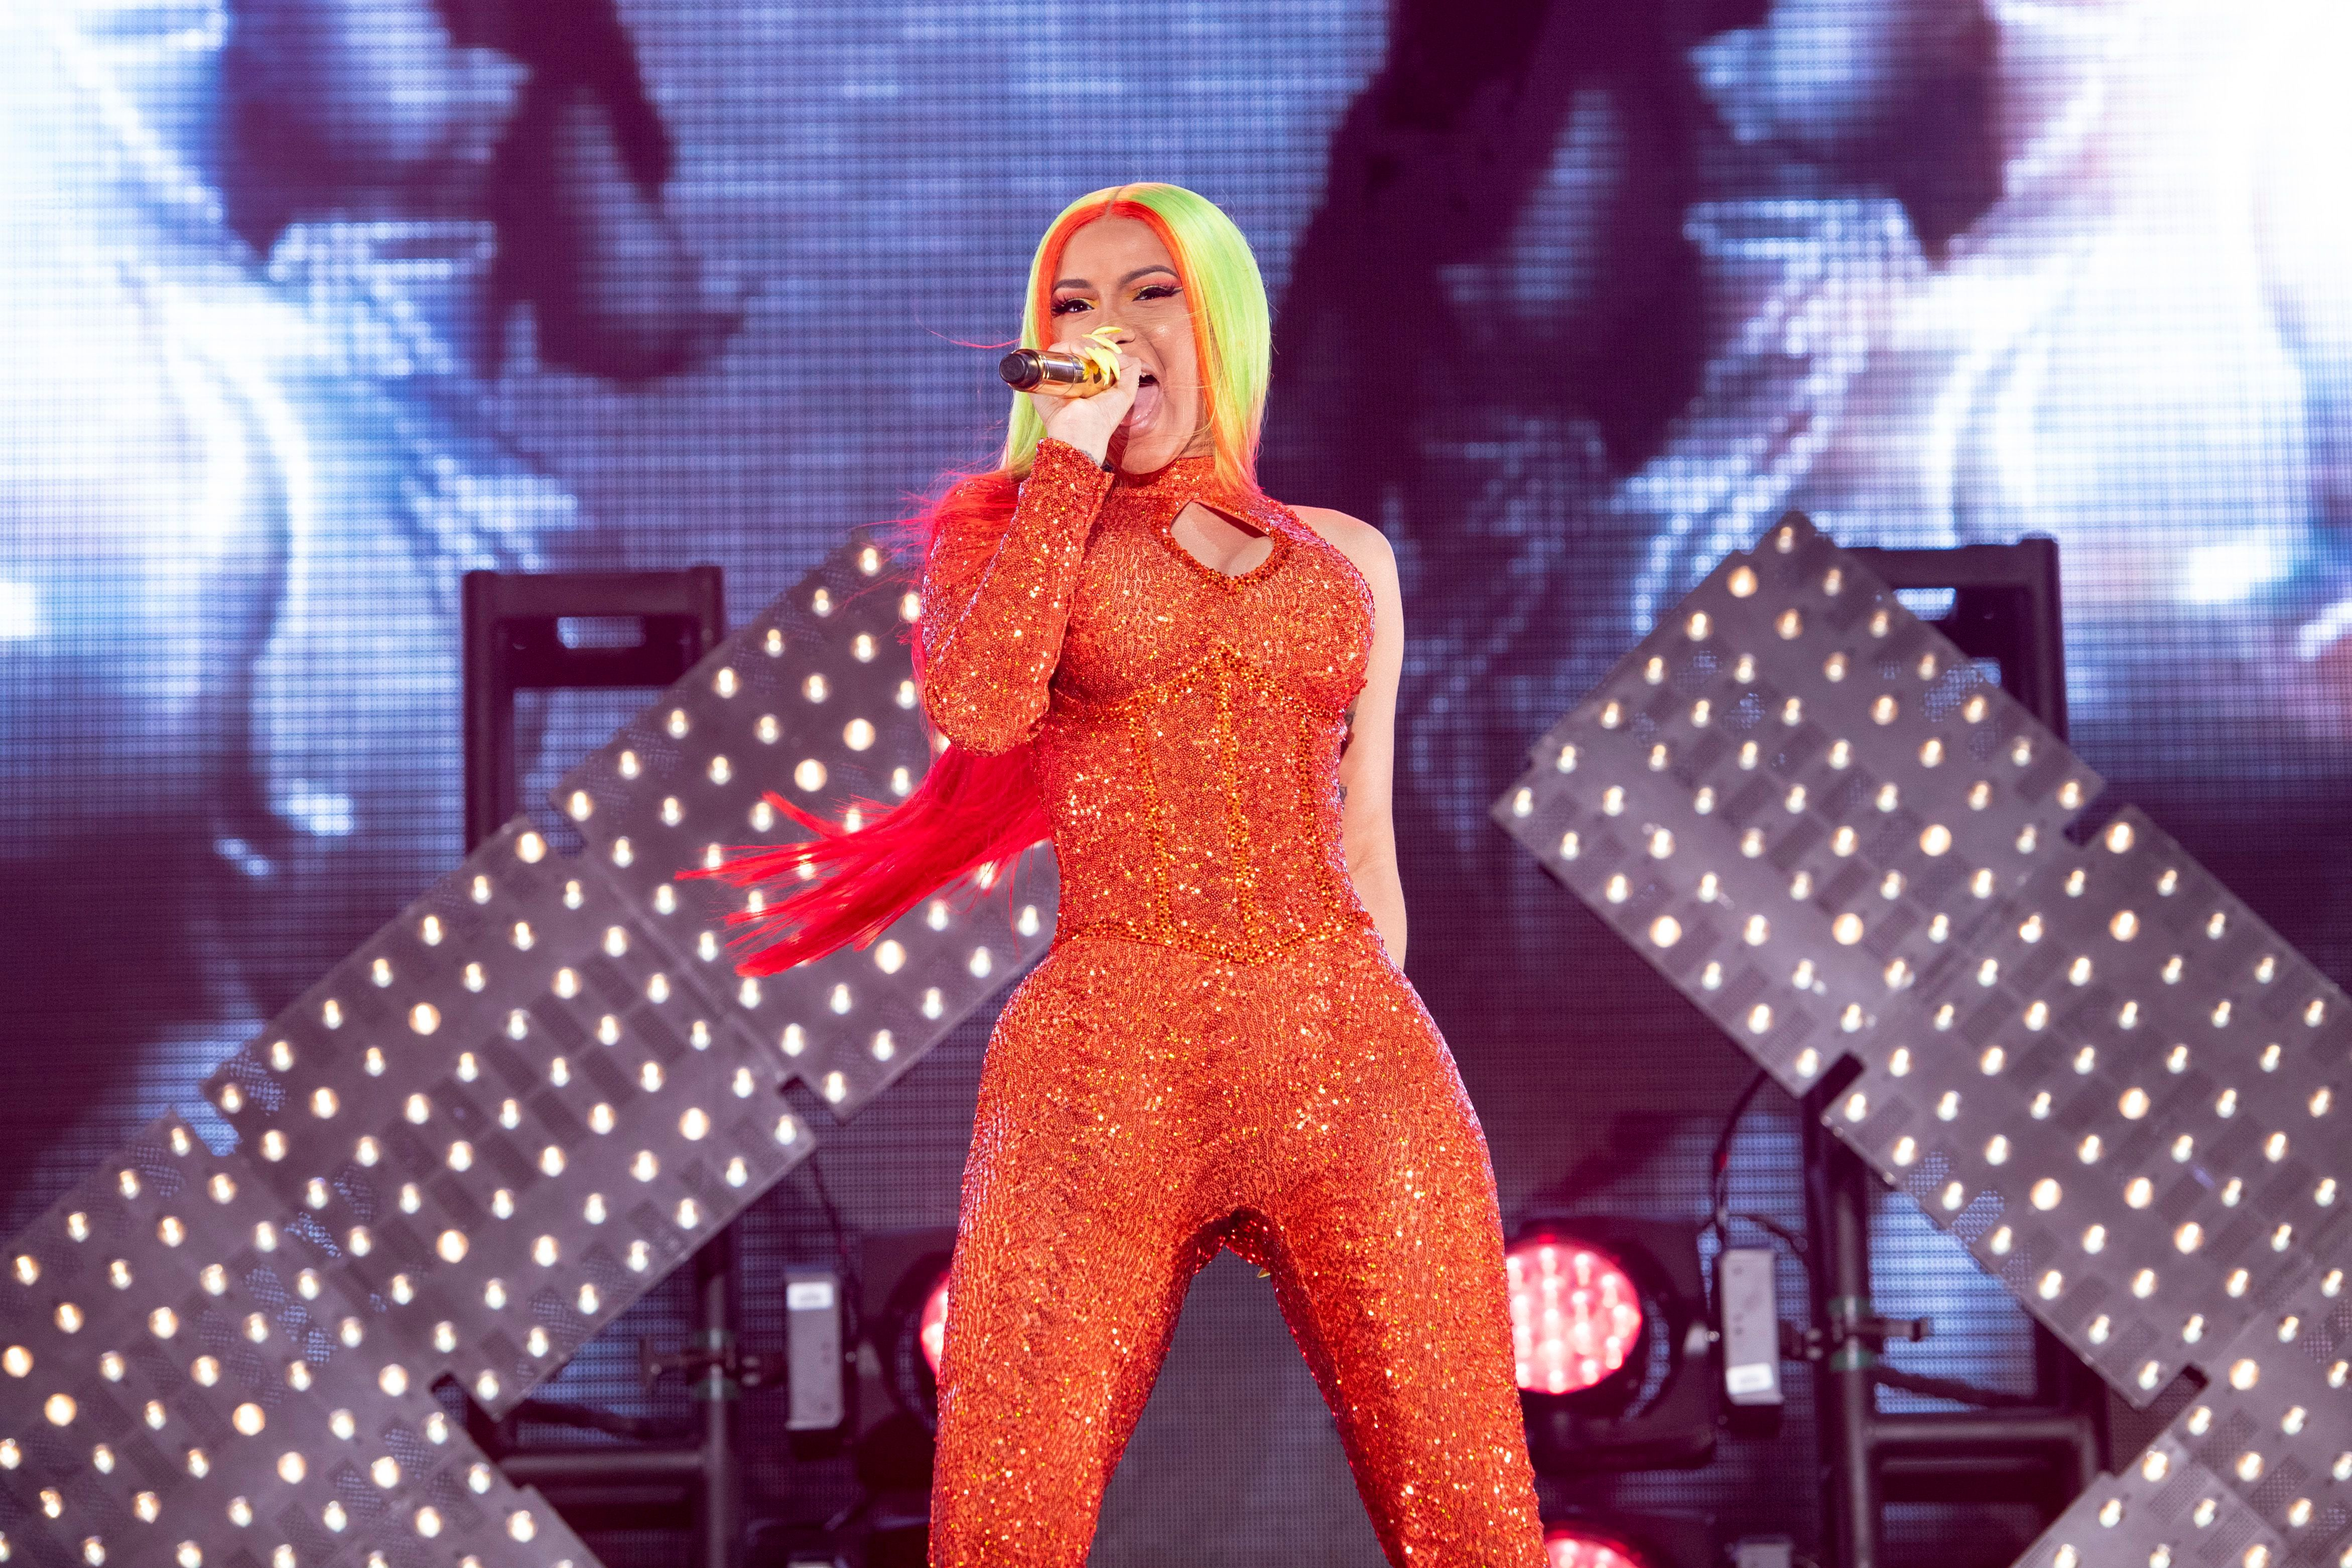 Cardi B Throws Gauntlet On Critics In New Song Press Rolling Stone